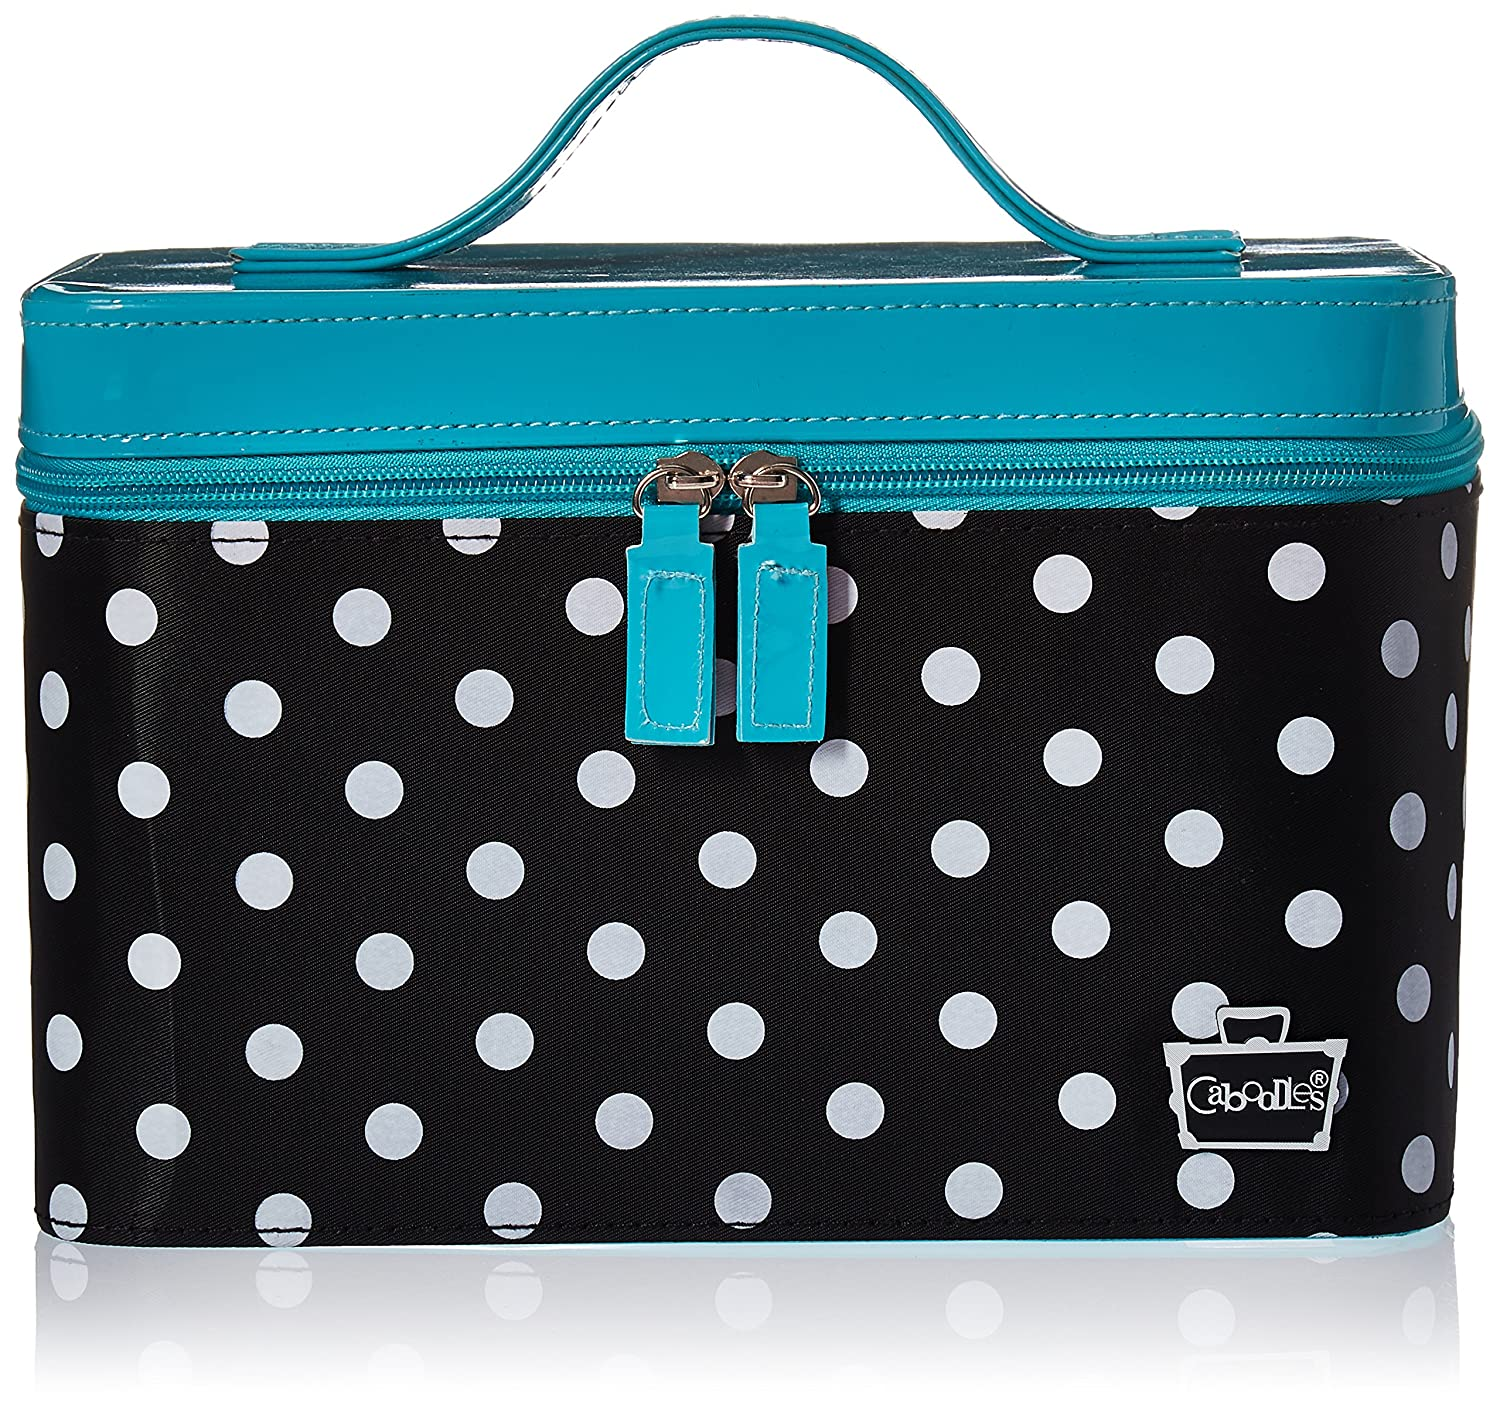 Caboodles Gilded Pleasure Nail Valet with White Polka Dots, Black, 2.36 Pound 584214